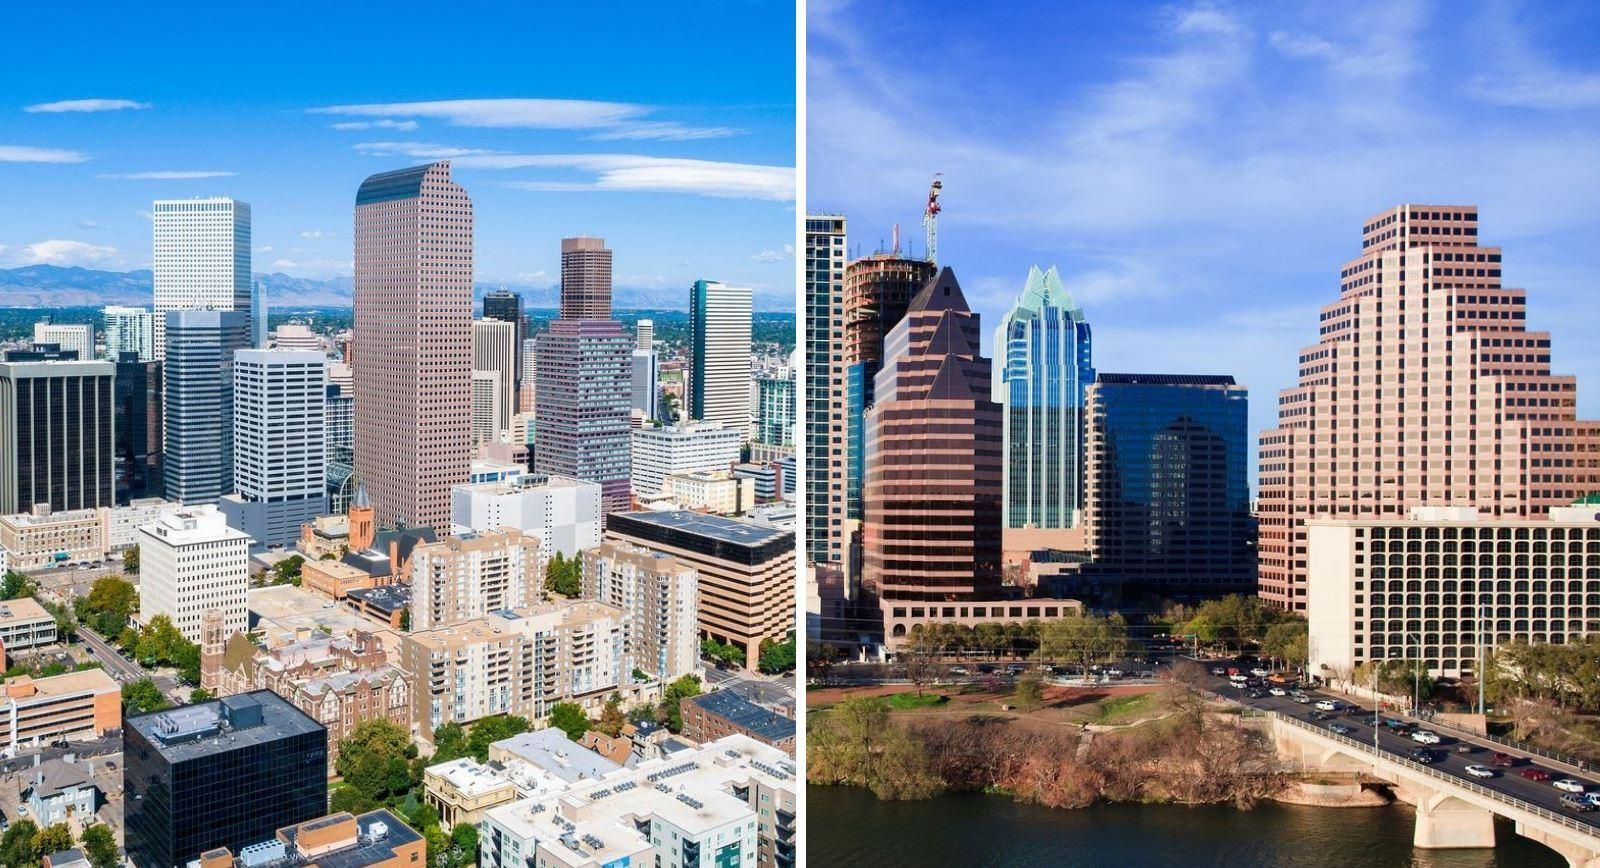 People Are Leaving the California Real Estate Market for 2 Cities